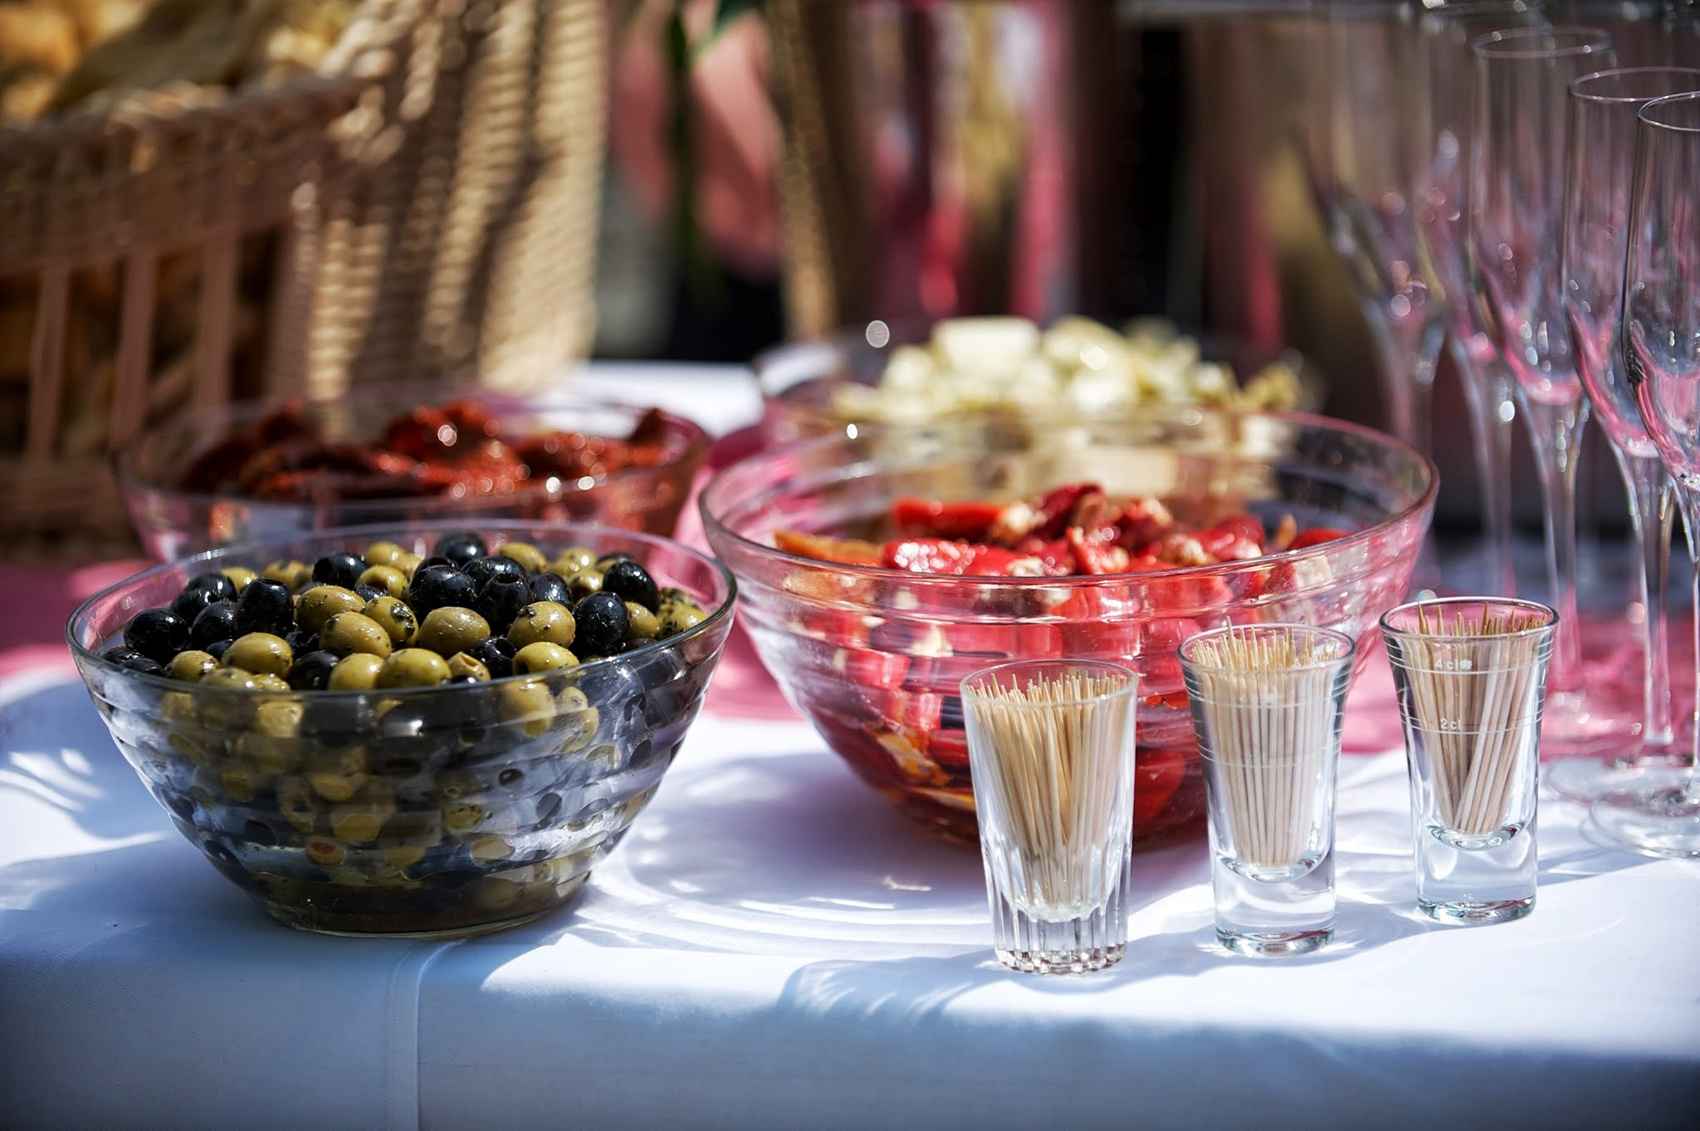 Domowy catering